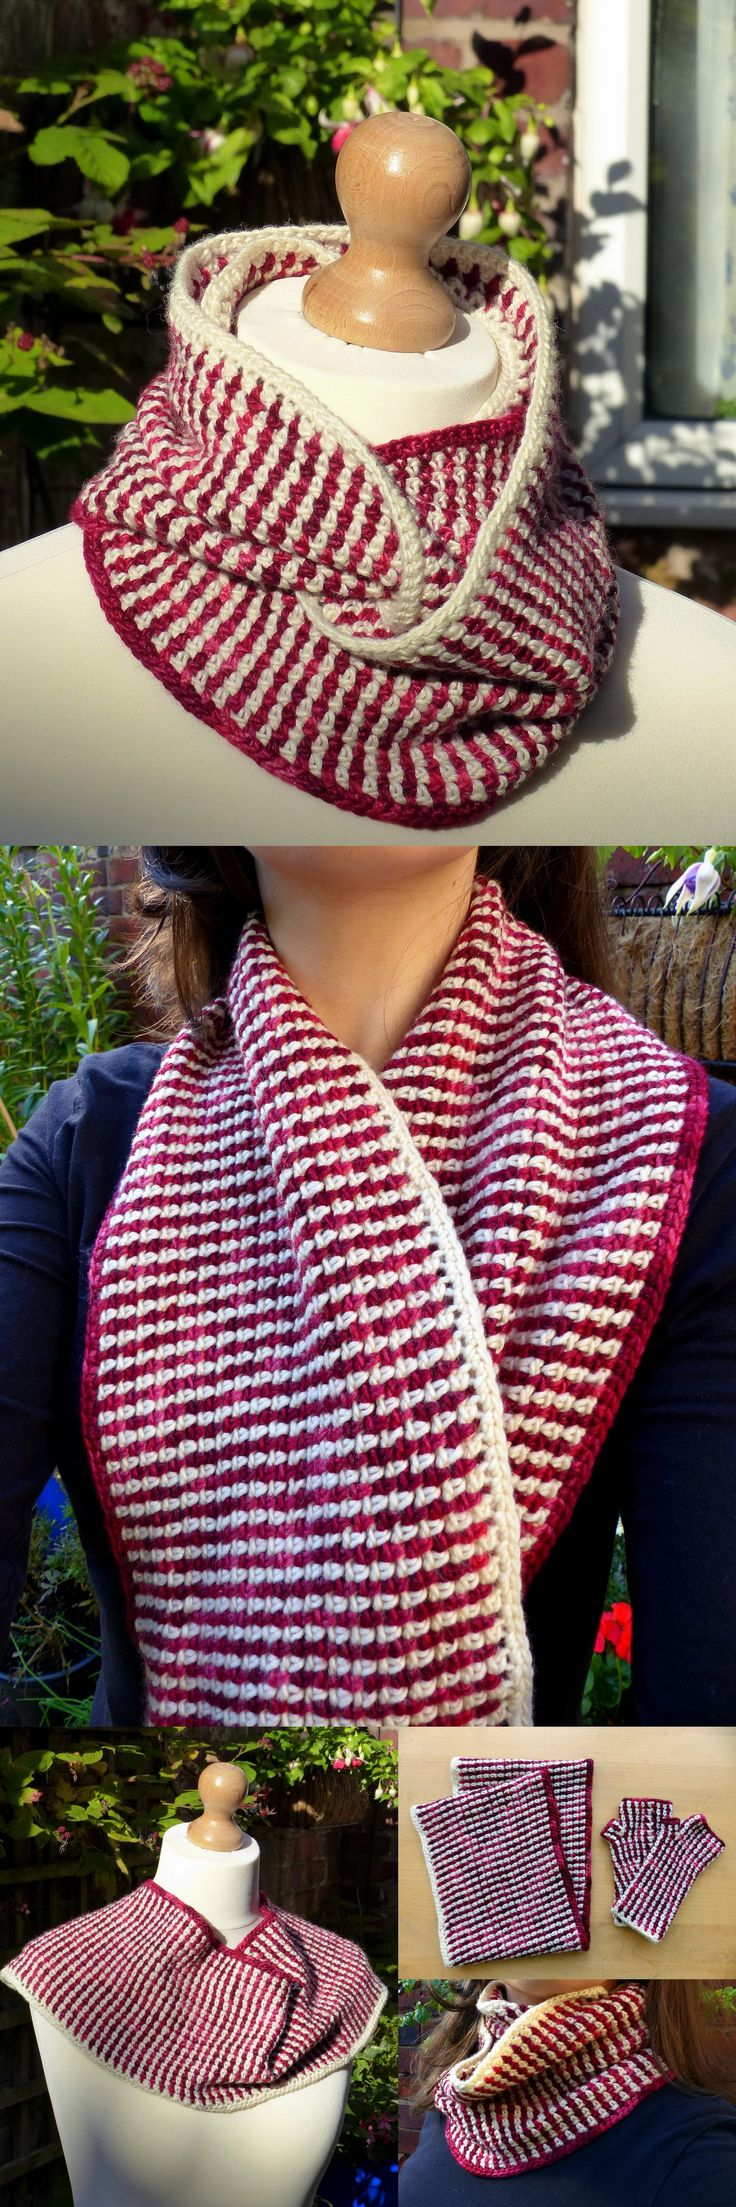 Linen Stitch Cowl – a free crochet pattern from Make My Day Creative – so easy, no ends!